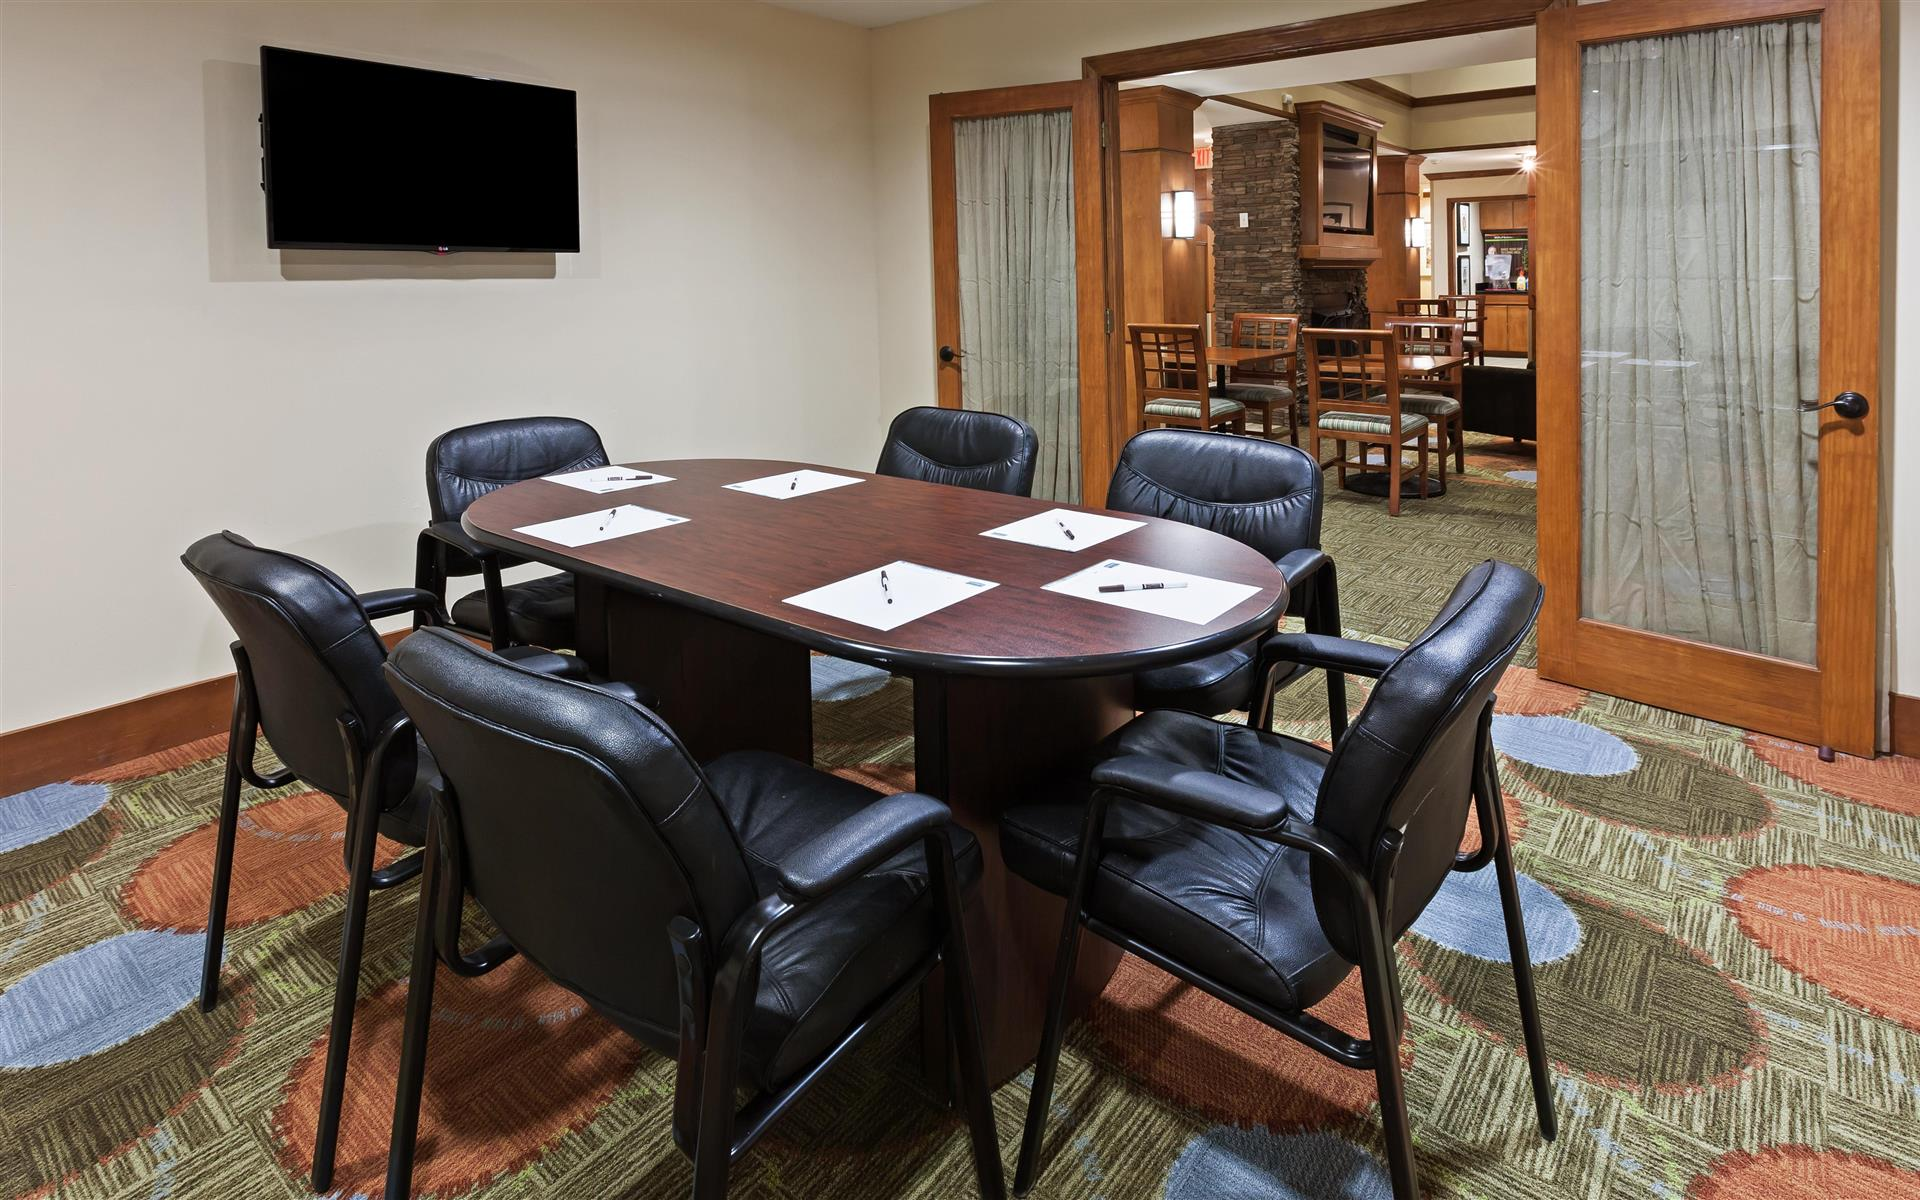 Staybridge Suites NW near Six Flags - The Bluebonnet Room